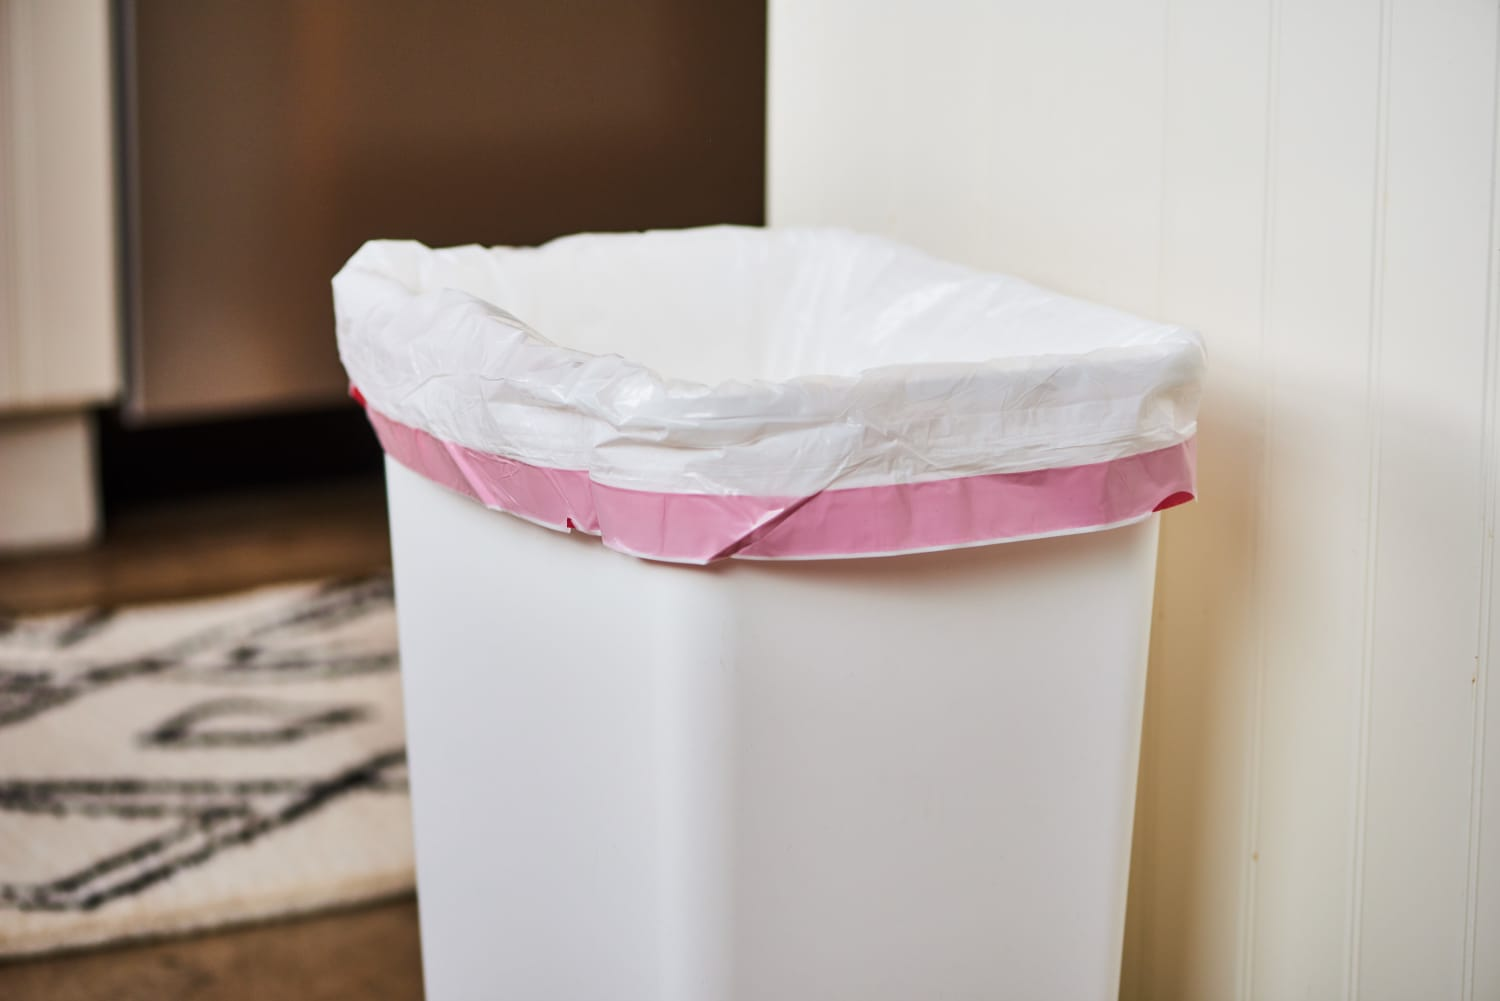 The Totally Free Trick That'll Make Your Trash Can a Million Times Better